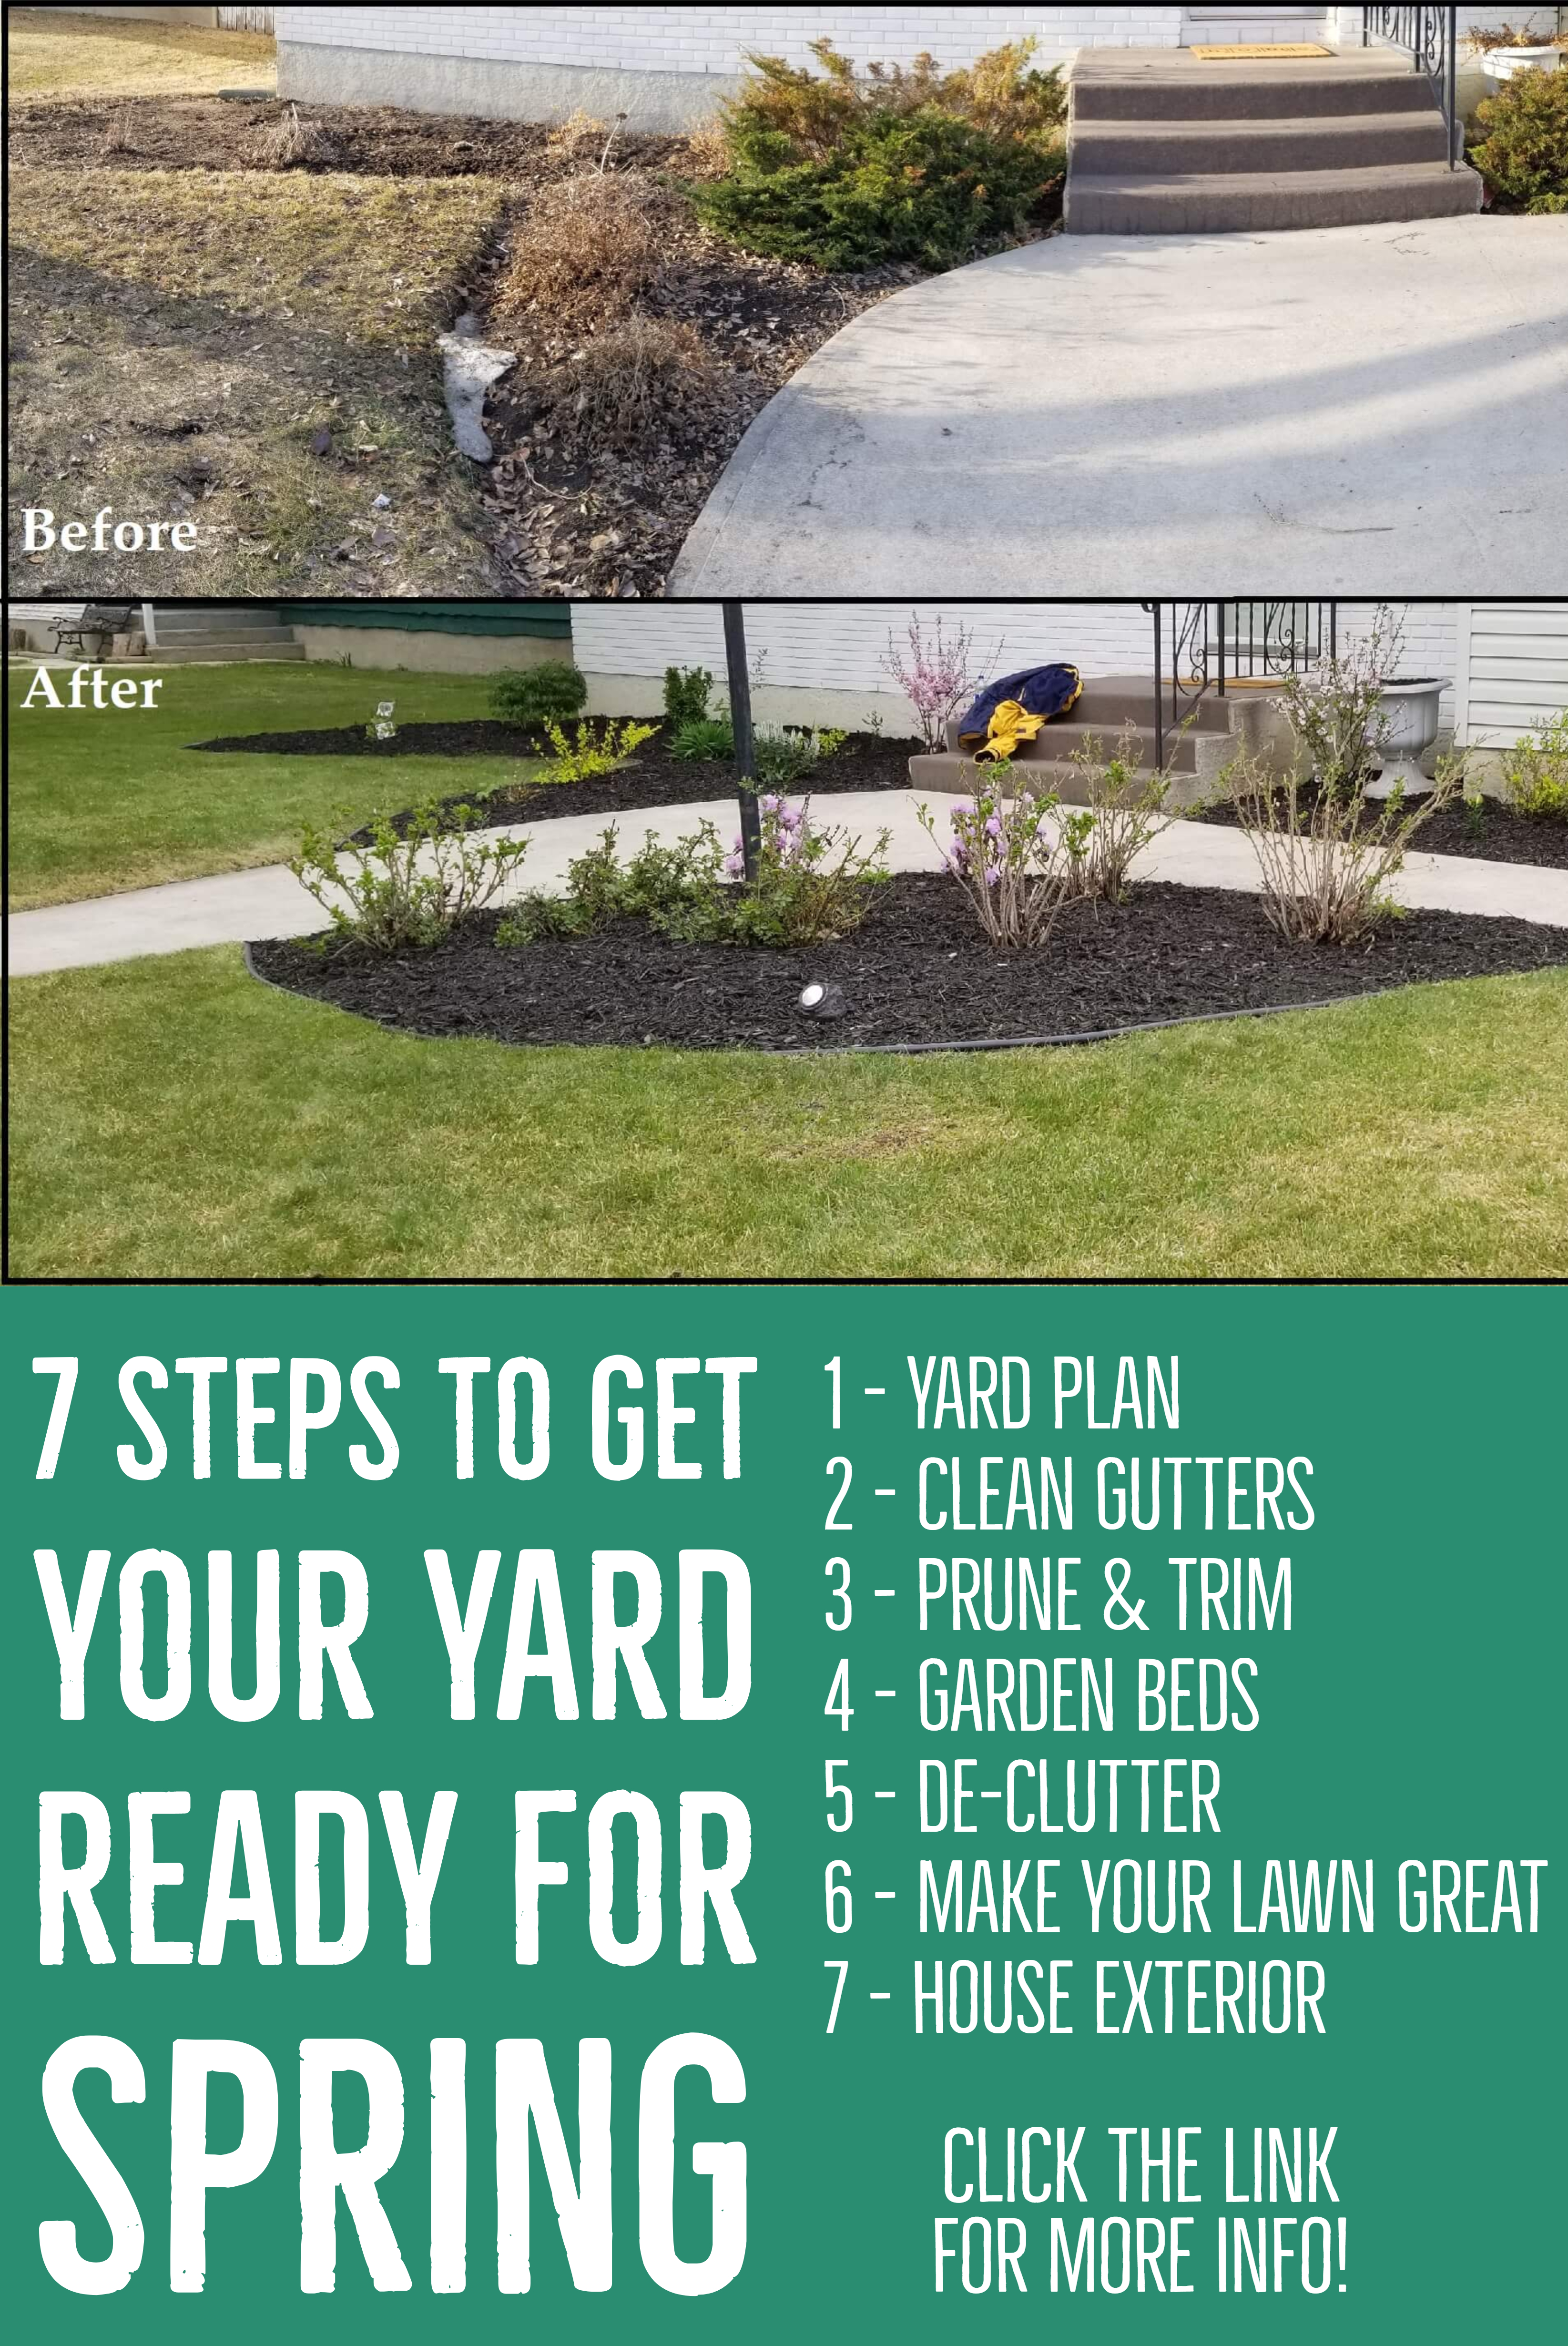 7 Steps To Get Your Yard Ready For Spring Yard Landscaping Yard